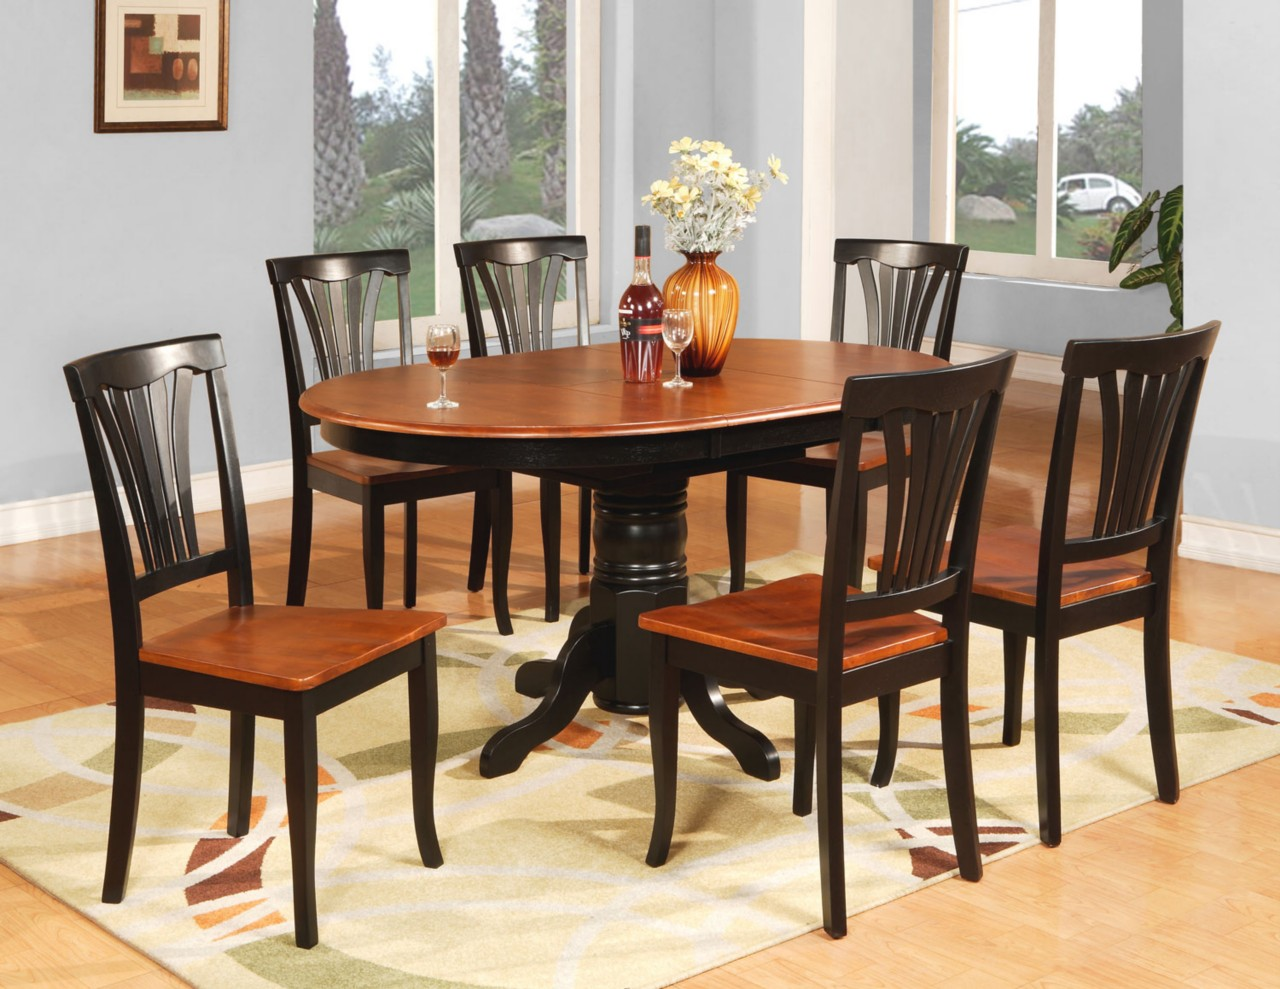 7 pc oval dinette kitchen dining room table 6 chairs ebay for Dining room table chairs